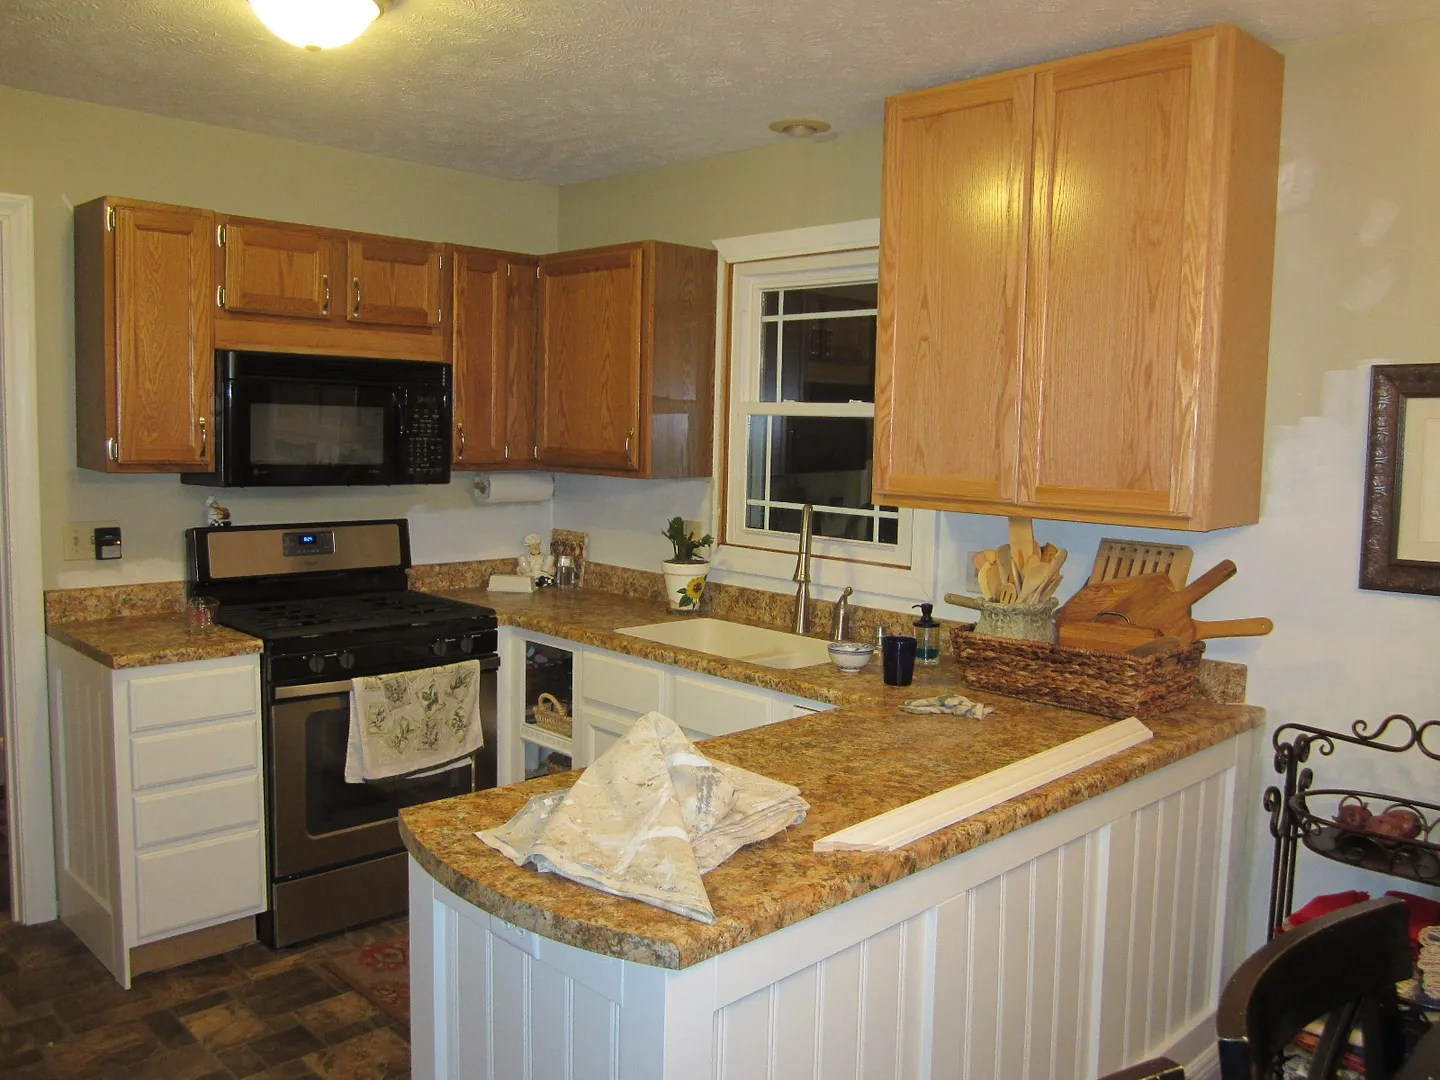 Kitchen Re-do On a Budget/HomeStagingBloomingtonIL.wordpress.com